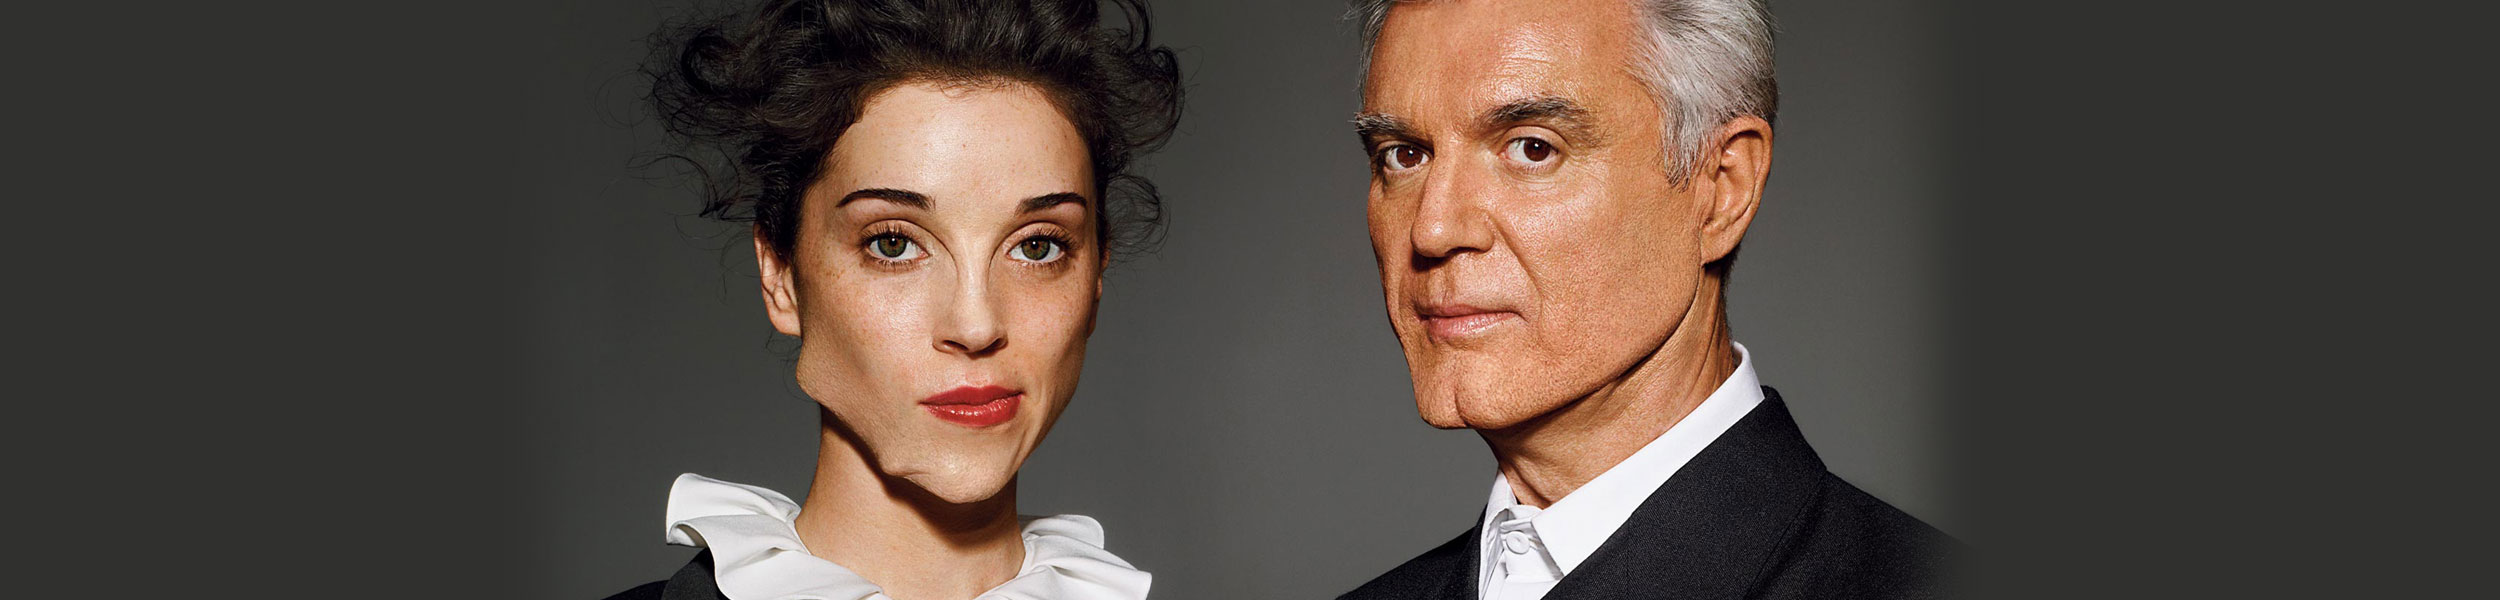 David Byrne & St. Vincent - David Byrne & St. Vincent Confirm Extensive North American Summer Tour